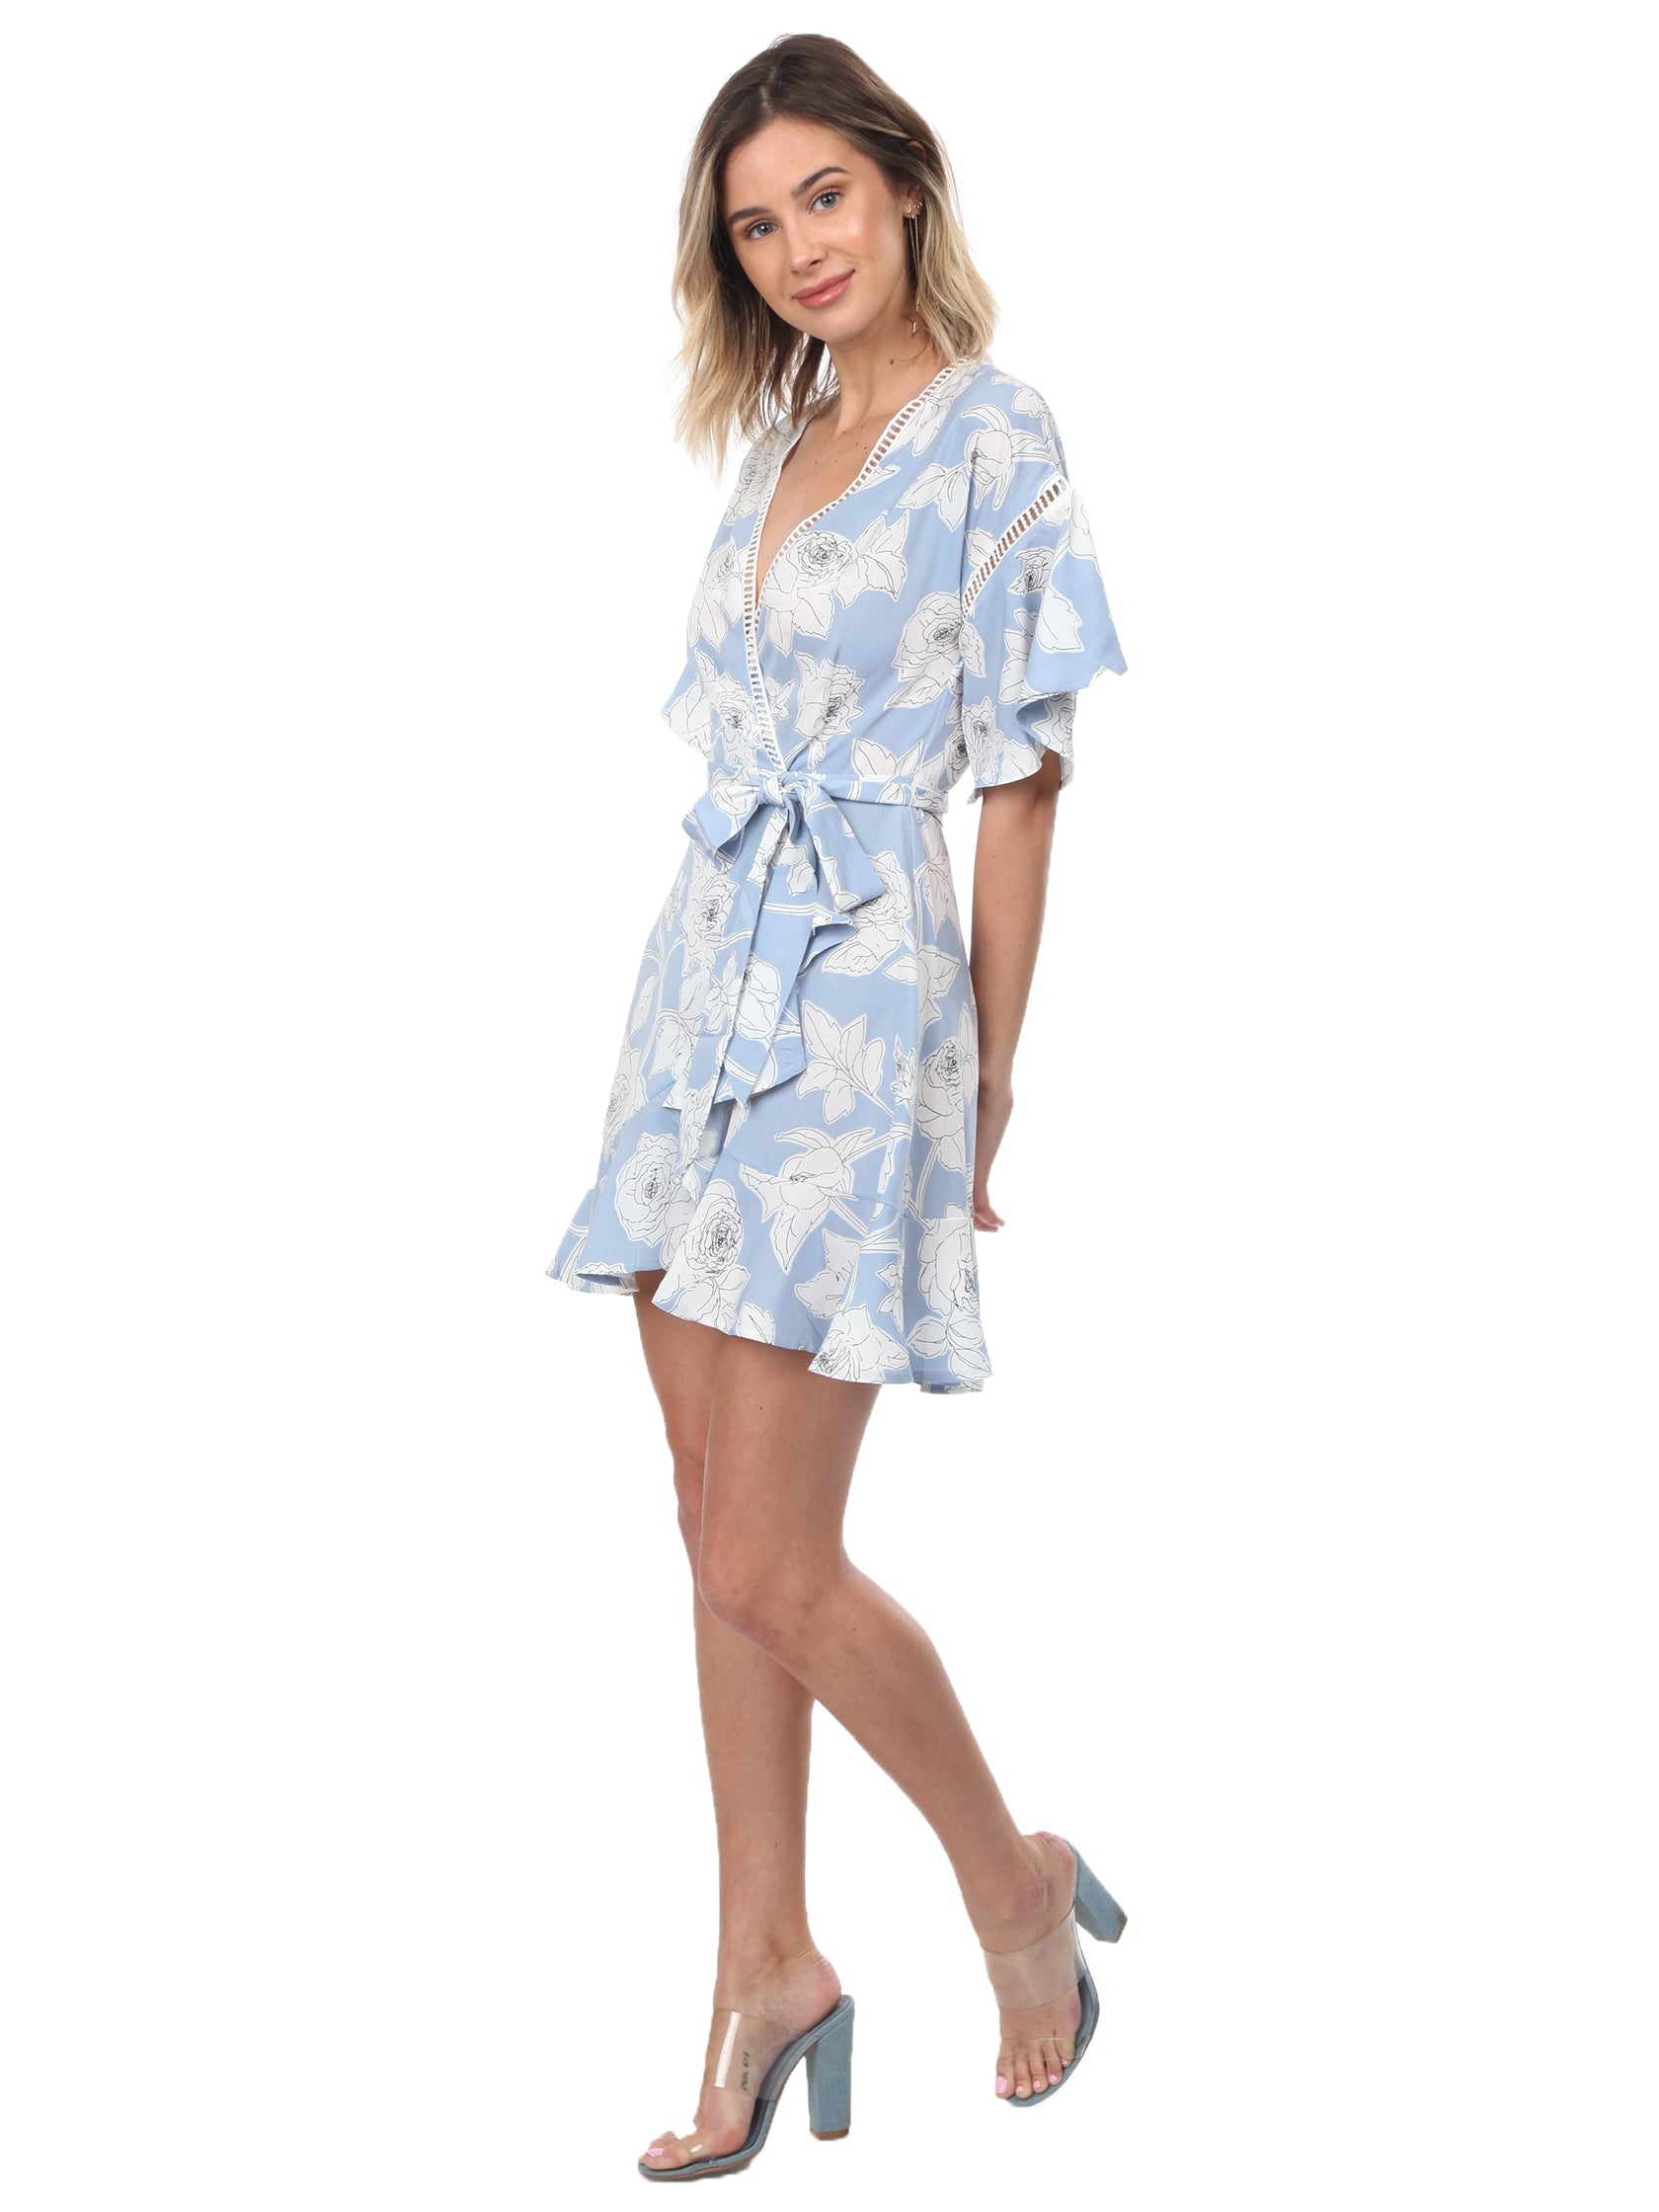 Girl outfit in a dress rental from Moon River called Floral Printed Wrap Dress